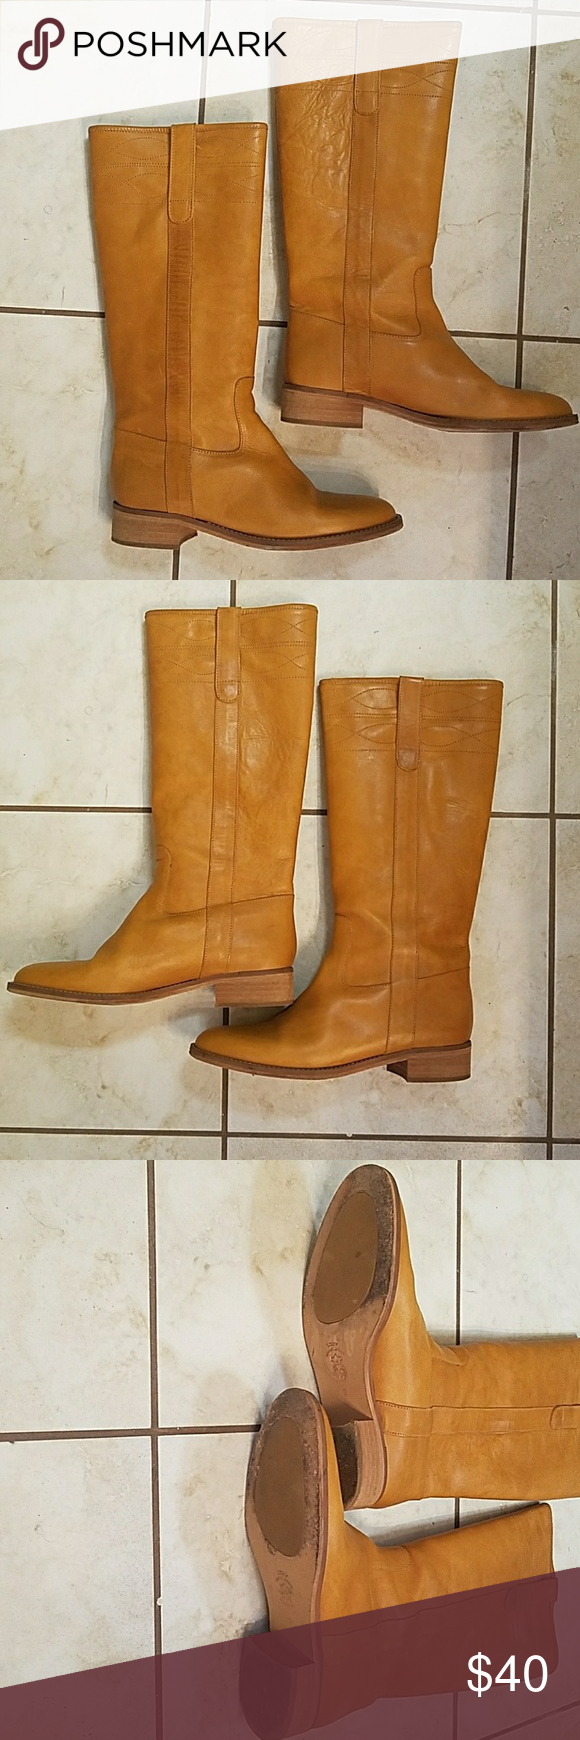 Woman's J Crew Riding Boots Only worn a few times... In good condition... Classic and Stylish... Color is a light camel brown... Very comfortable... J. Crew Shoes